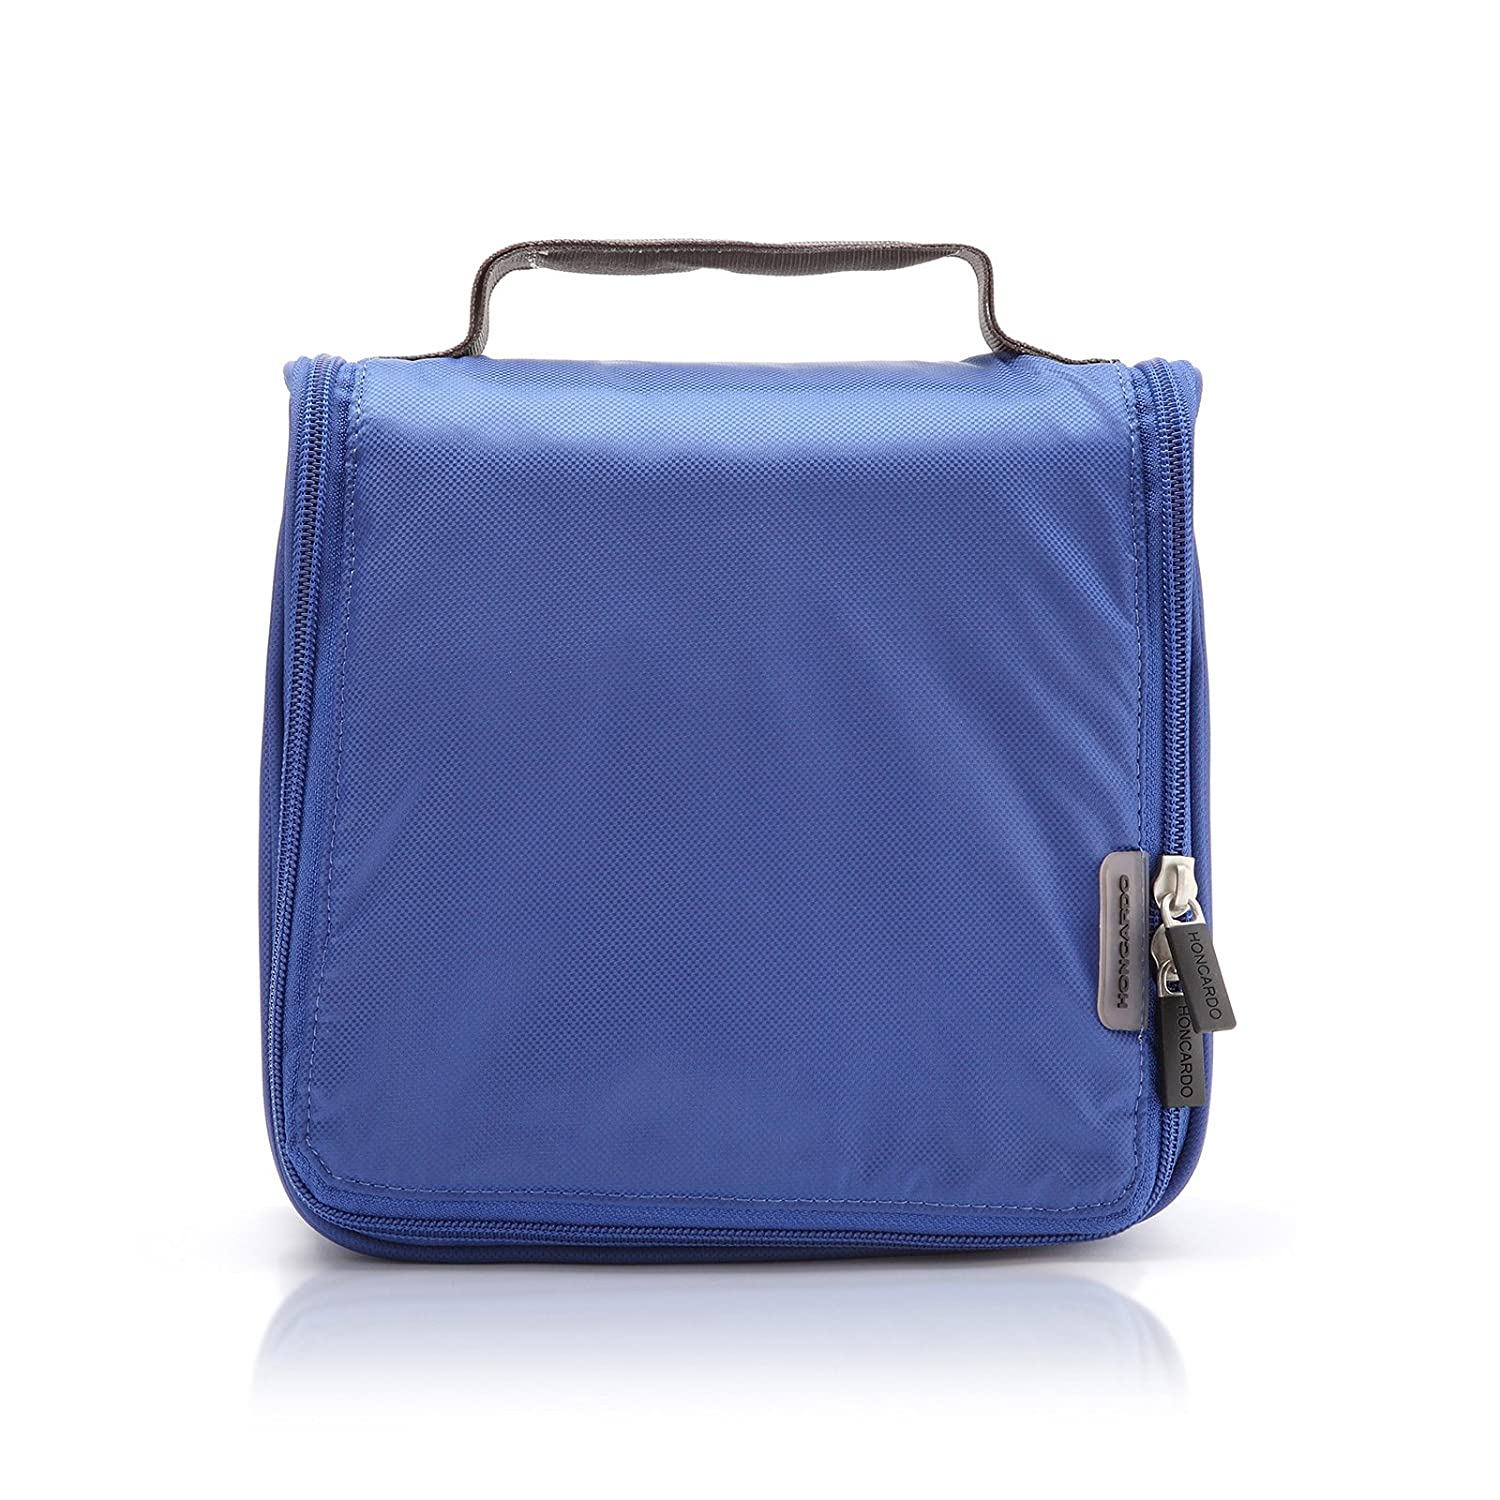 5a8ce7c511 Buy Blue   HONCARDO Toiletry bag Online at Lowest Price in India ...